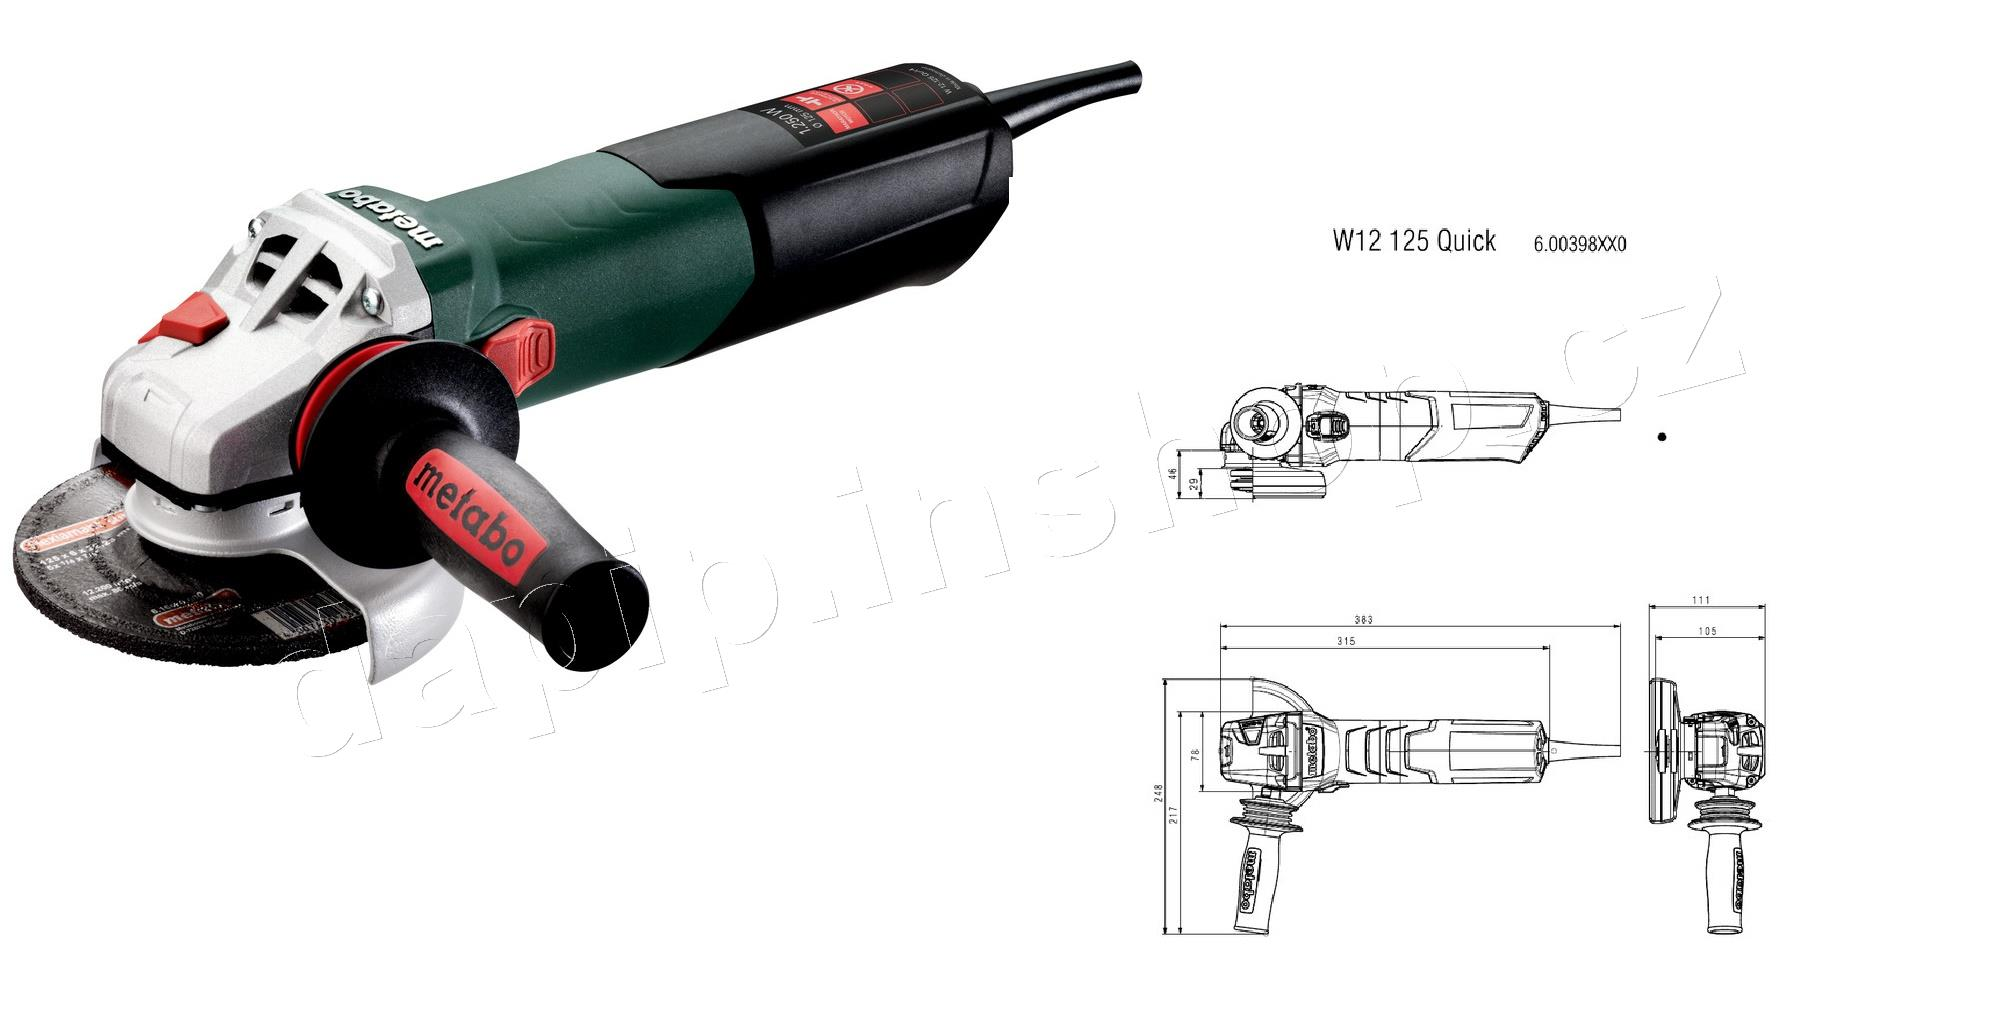 W 12-125 QUICK - METABO